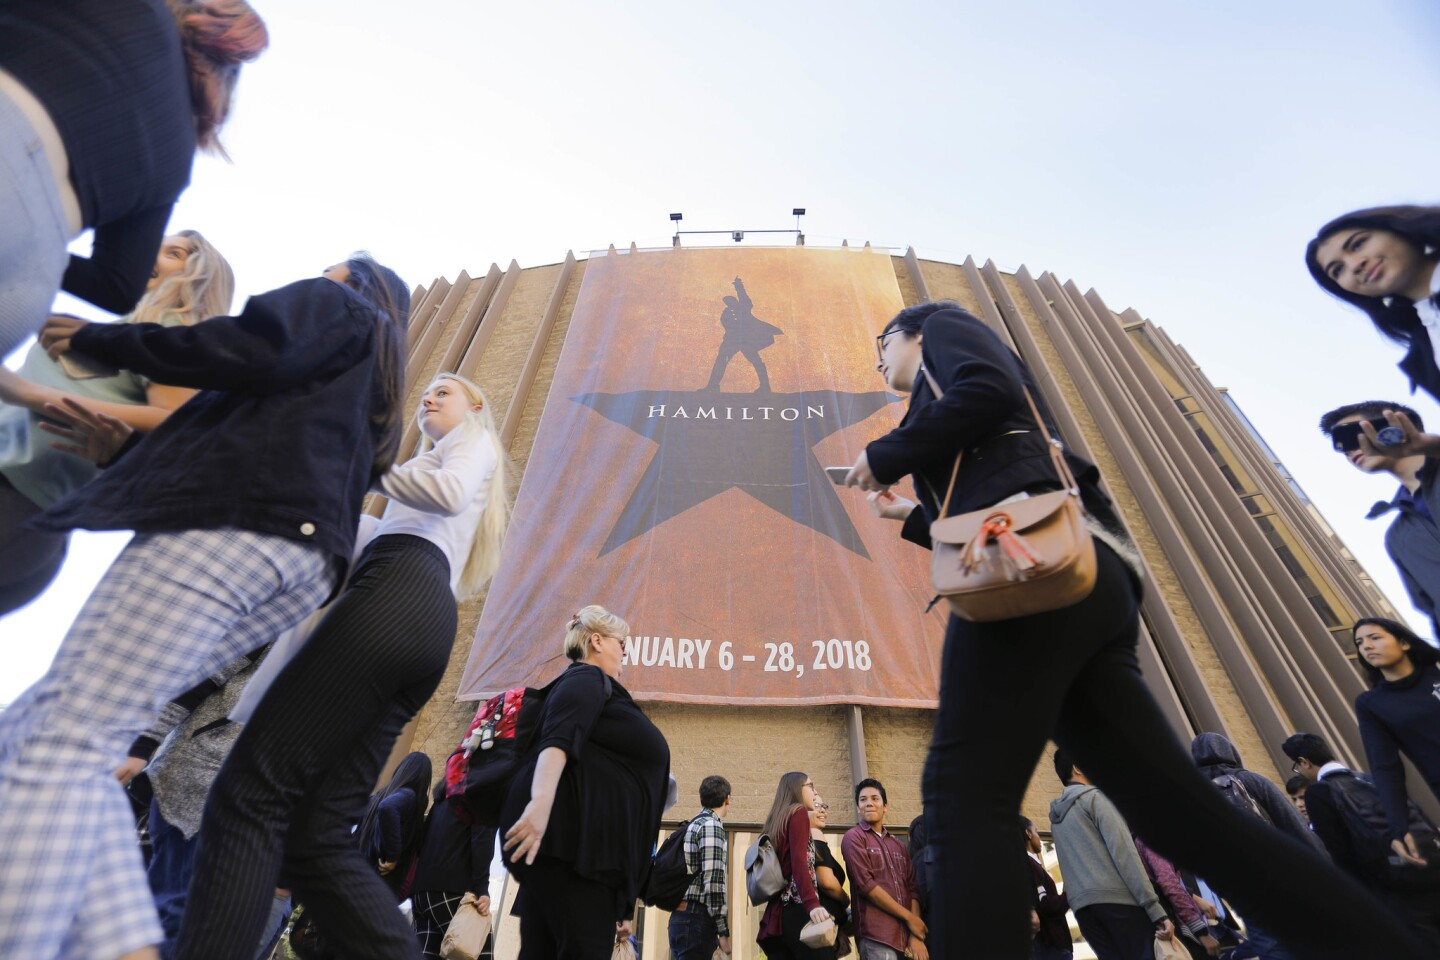 About 2, 800 high school students studying American history attended EduHAM, the Hamilton Education Program at The San Diego Civic Theatre for a day long program which included a special performance of the hit play, student performances and a discussion with cast members of the play.